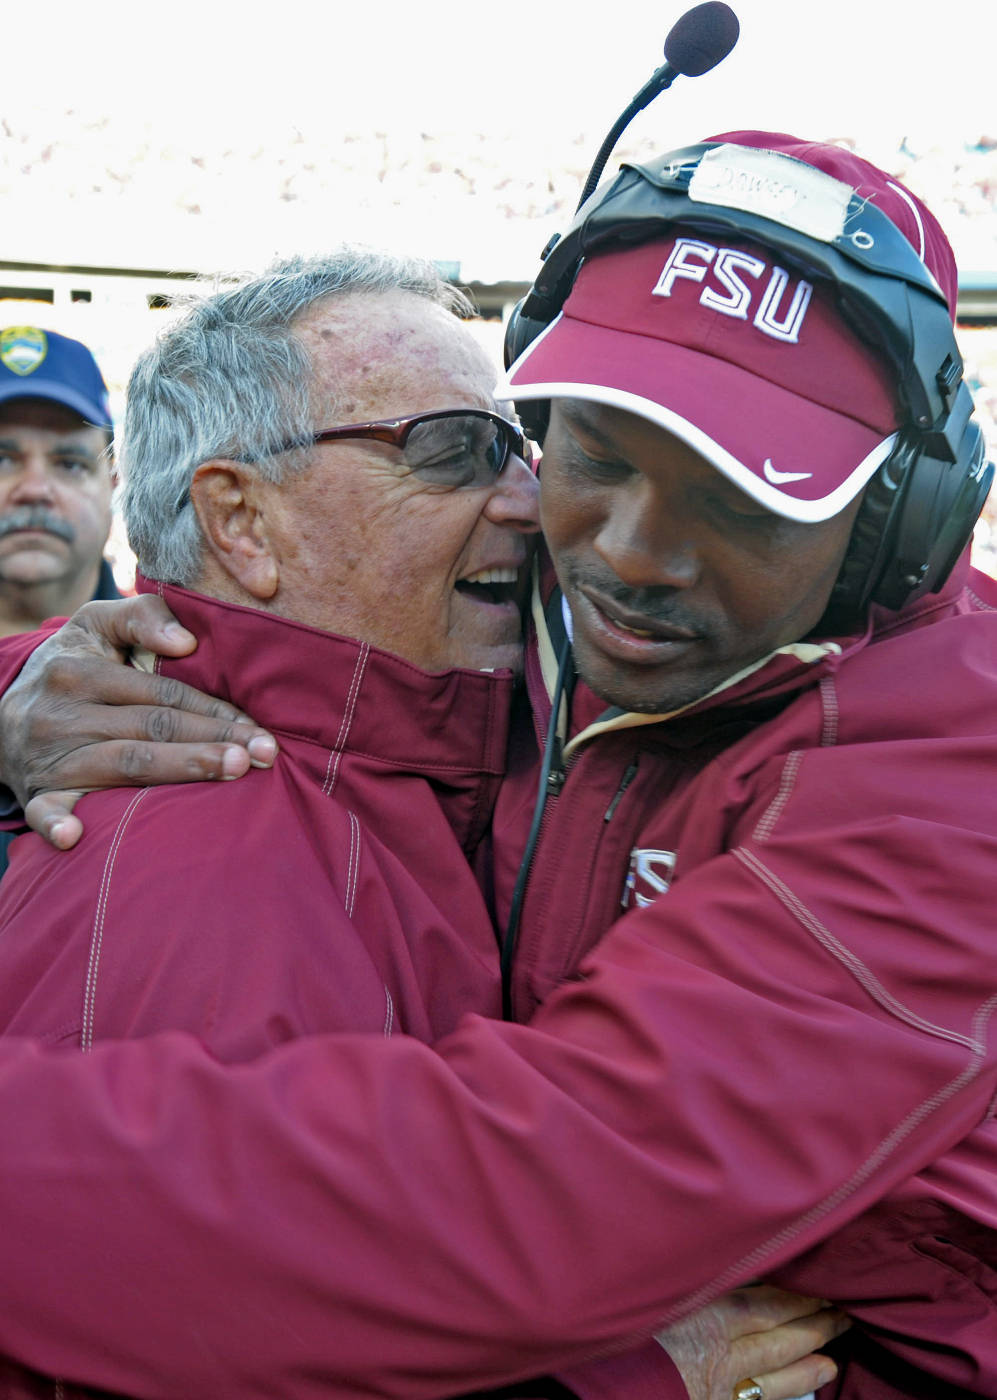 Bobby Bowden and Lawrence Dawsey share a hug on the sideline